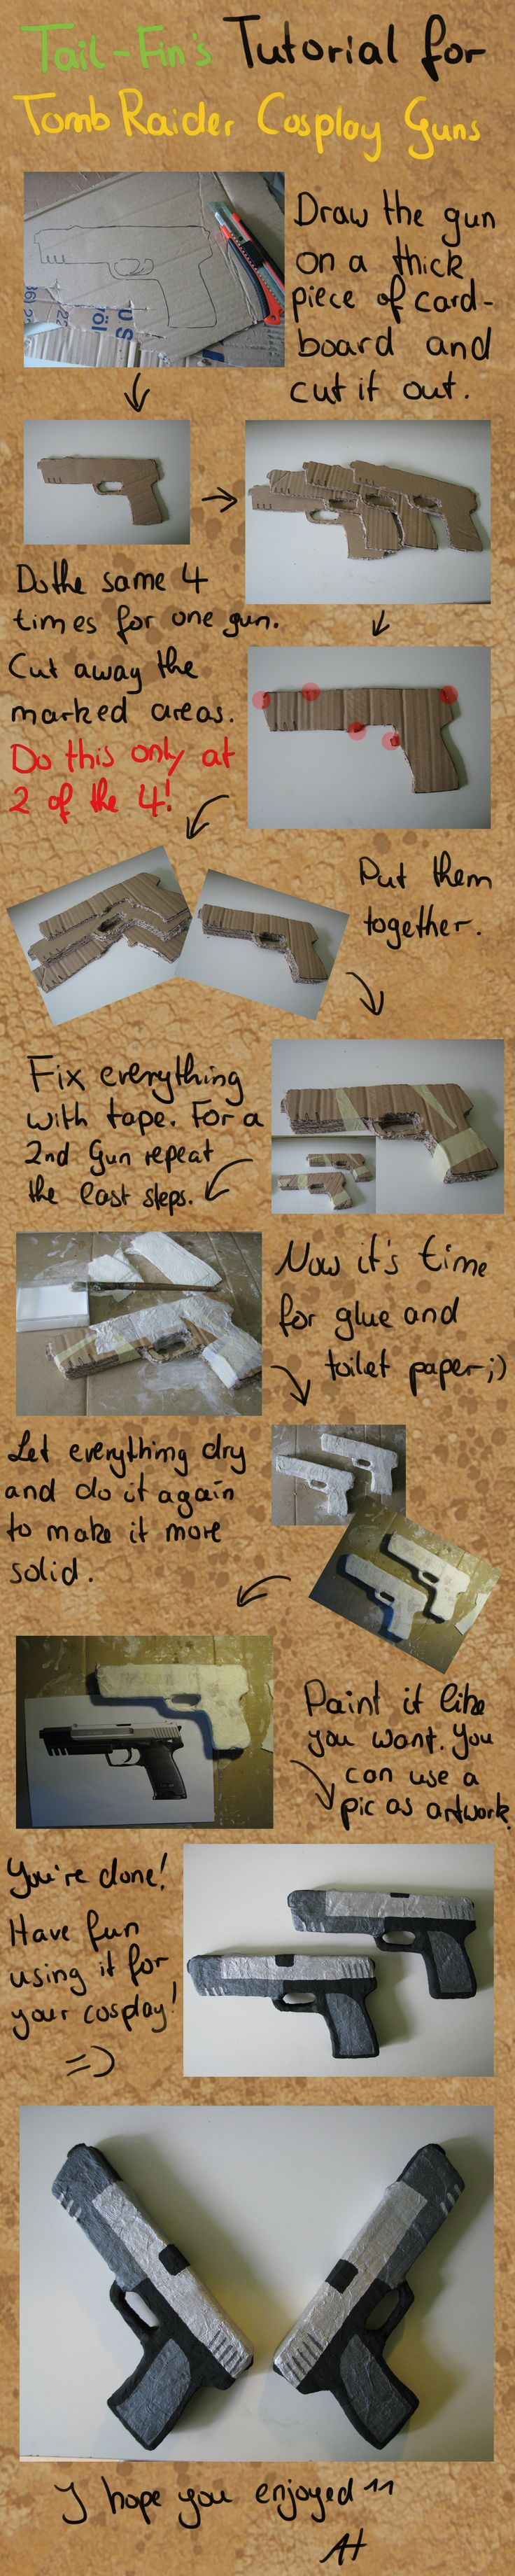 TR Cosplay Gun Tutorial by Tail-Fin.deviantart.com on @deviantART. Could use for other guns as well... Ah-ha!